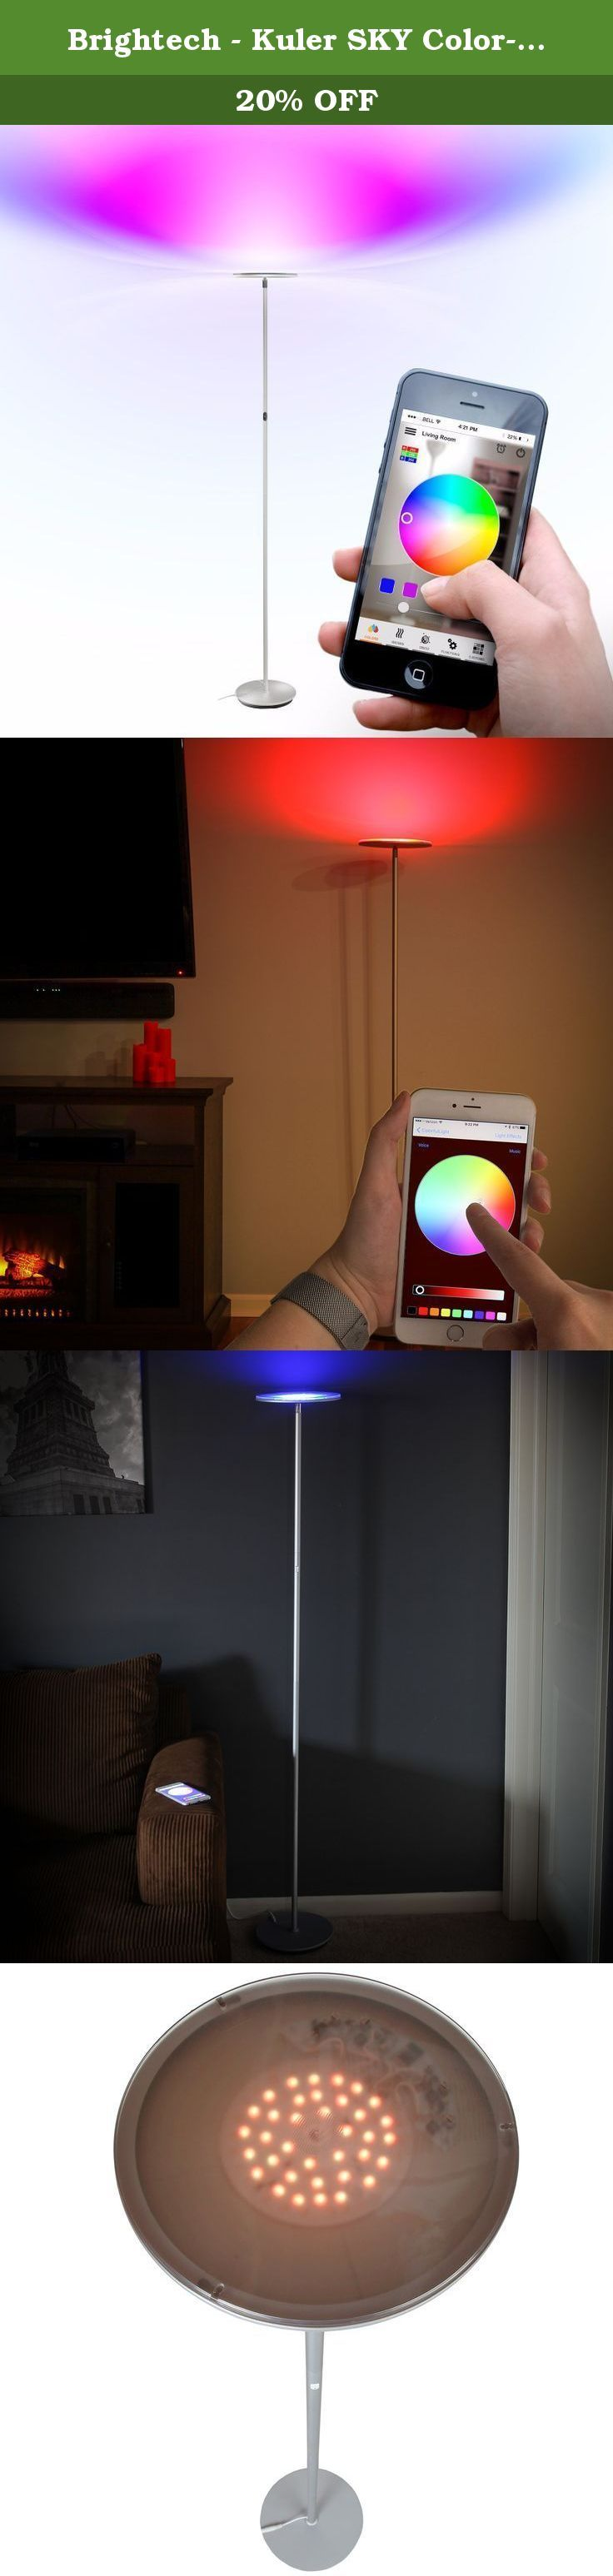 Brightech - Kuler SKY Color-Changing Floor Lamp - Omni-Directional Head - 30 Watts - Energy-Saving Built-in LED that's Bluetooth Compatible - Control with your iPhone or iPad! - Silver. Mesmerizing to watch, Brightech's Kuler SKY Color-Changing Floor Lamp with a rotating glass top casts an impressive glow in any direction. The Kuler SKY colors your world... in red, green, blue, violet, and thousands more. RGB color-changing LED lights can produce an endless kaleidoscope of enchanting new...